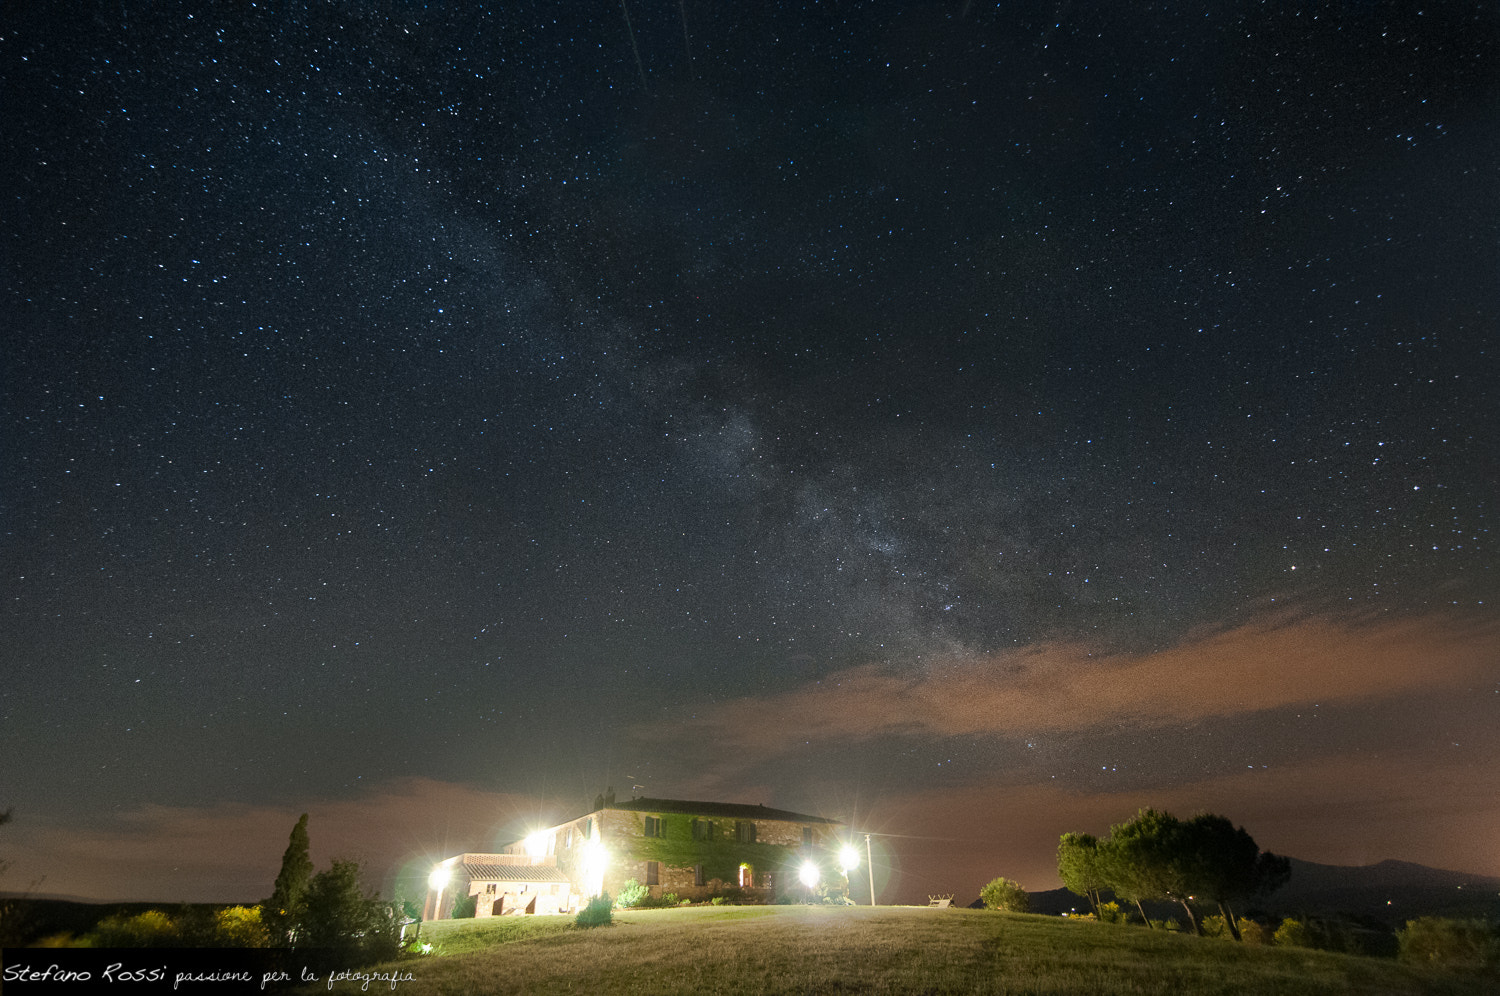 Photograph Tuscany Milky Way by Stefano Rossi on 500px